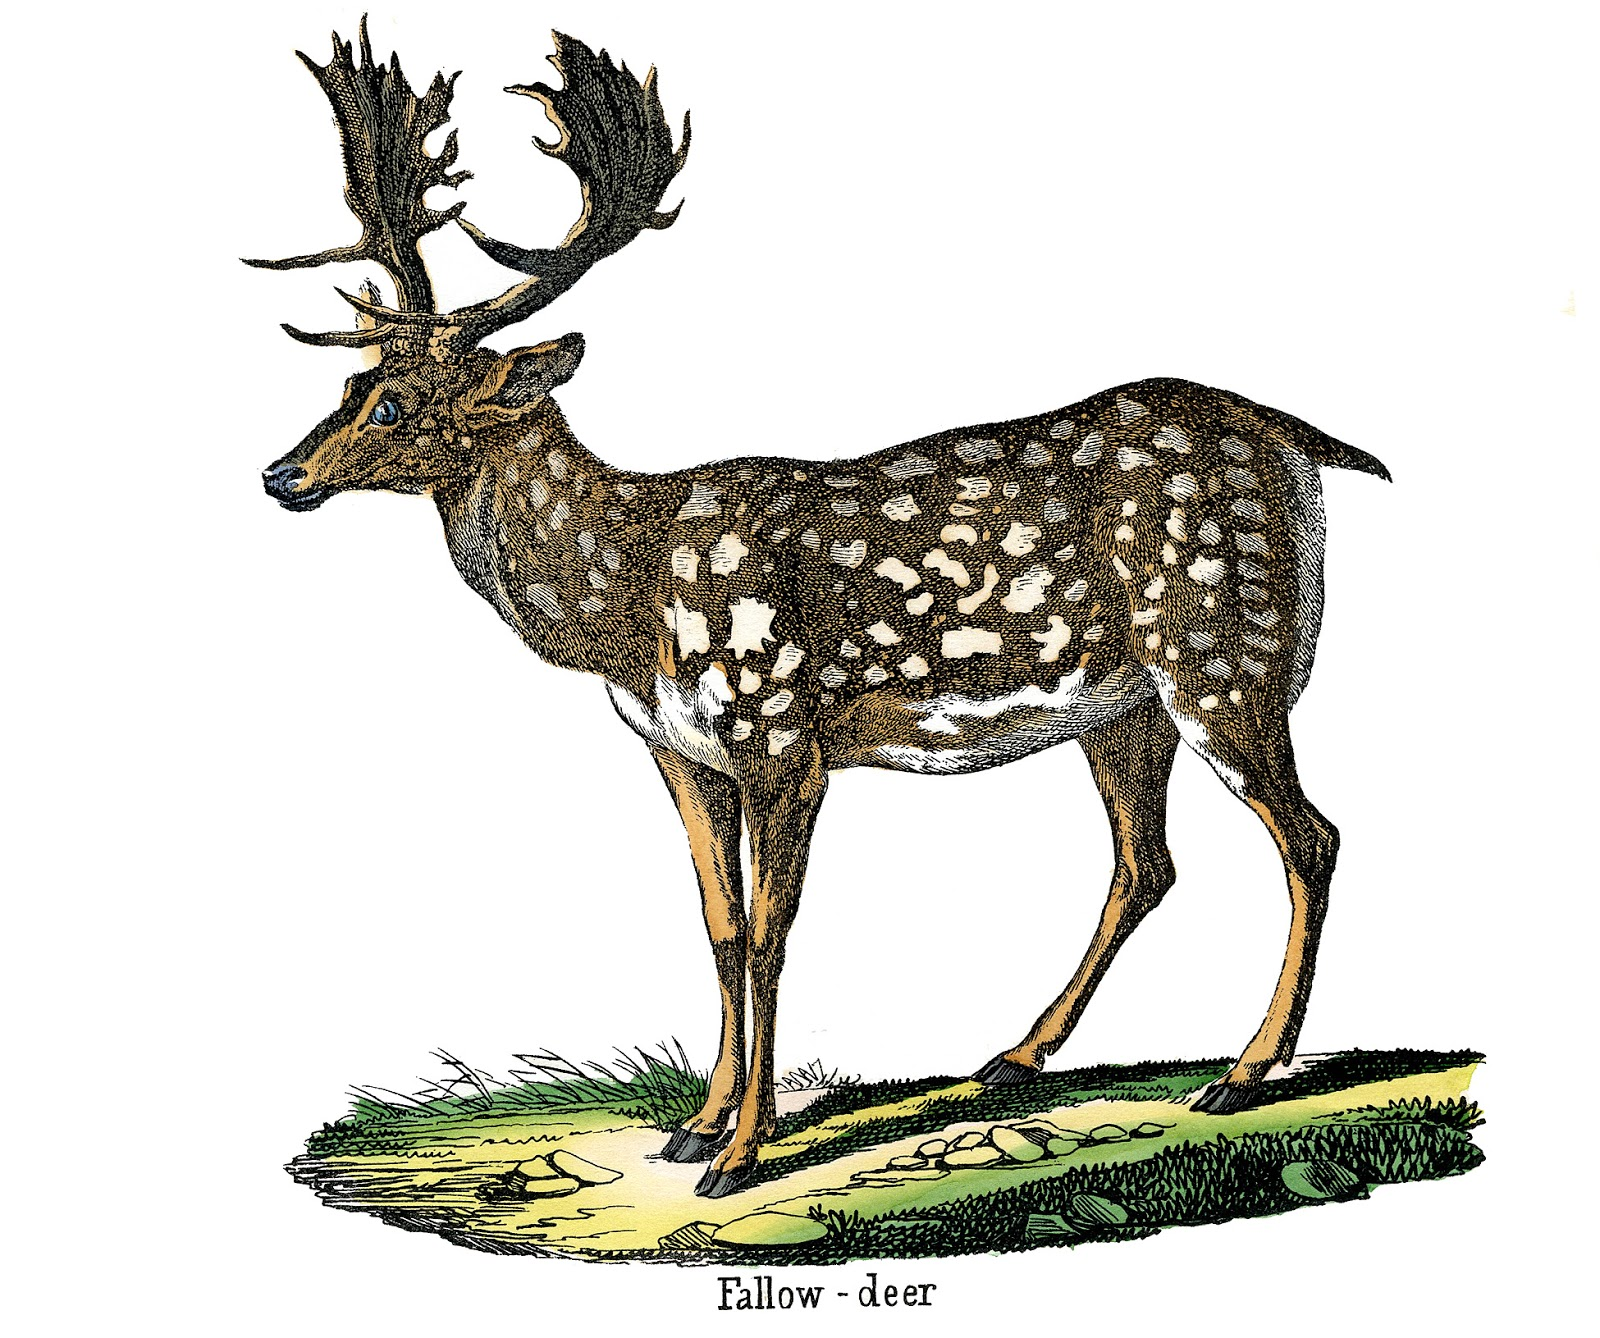 Vintage Animal Image - Fallow Deer - The Graphics Fairy